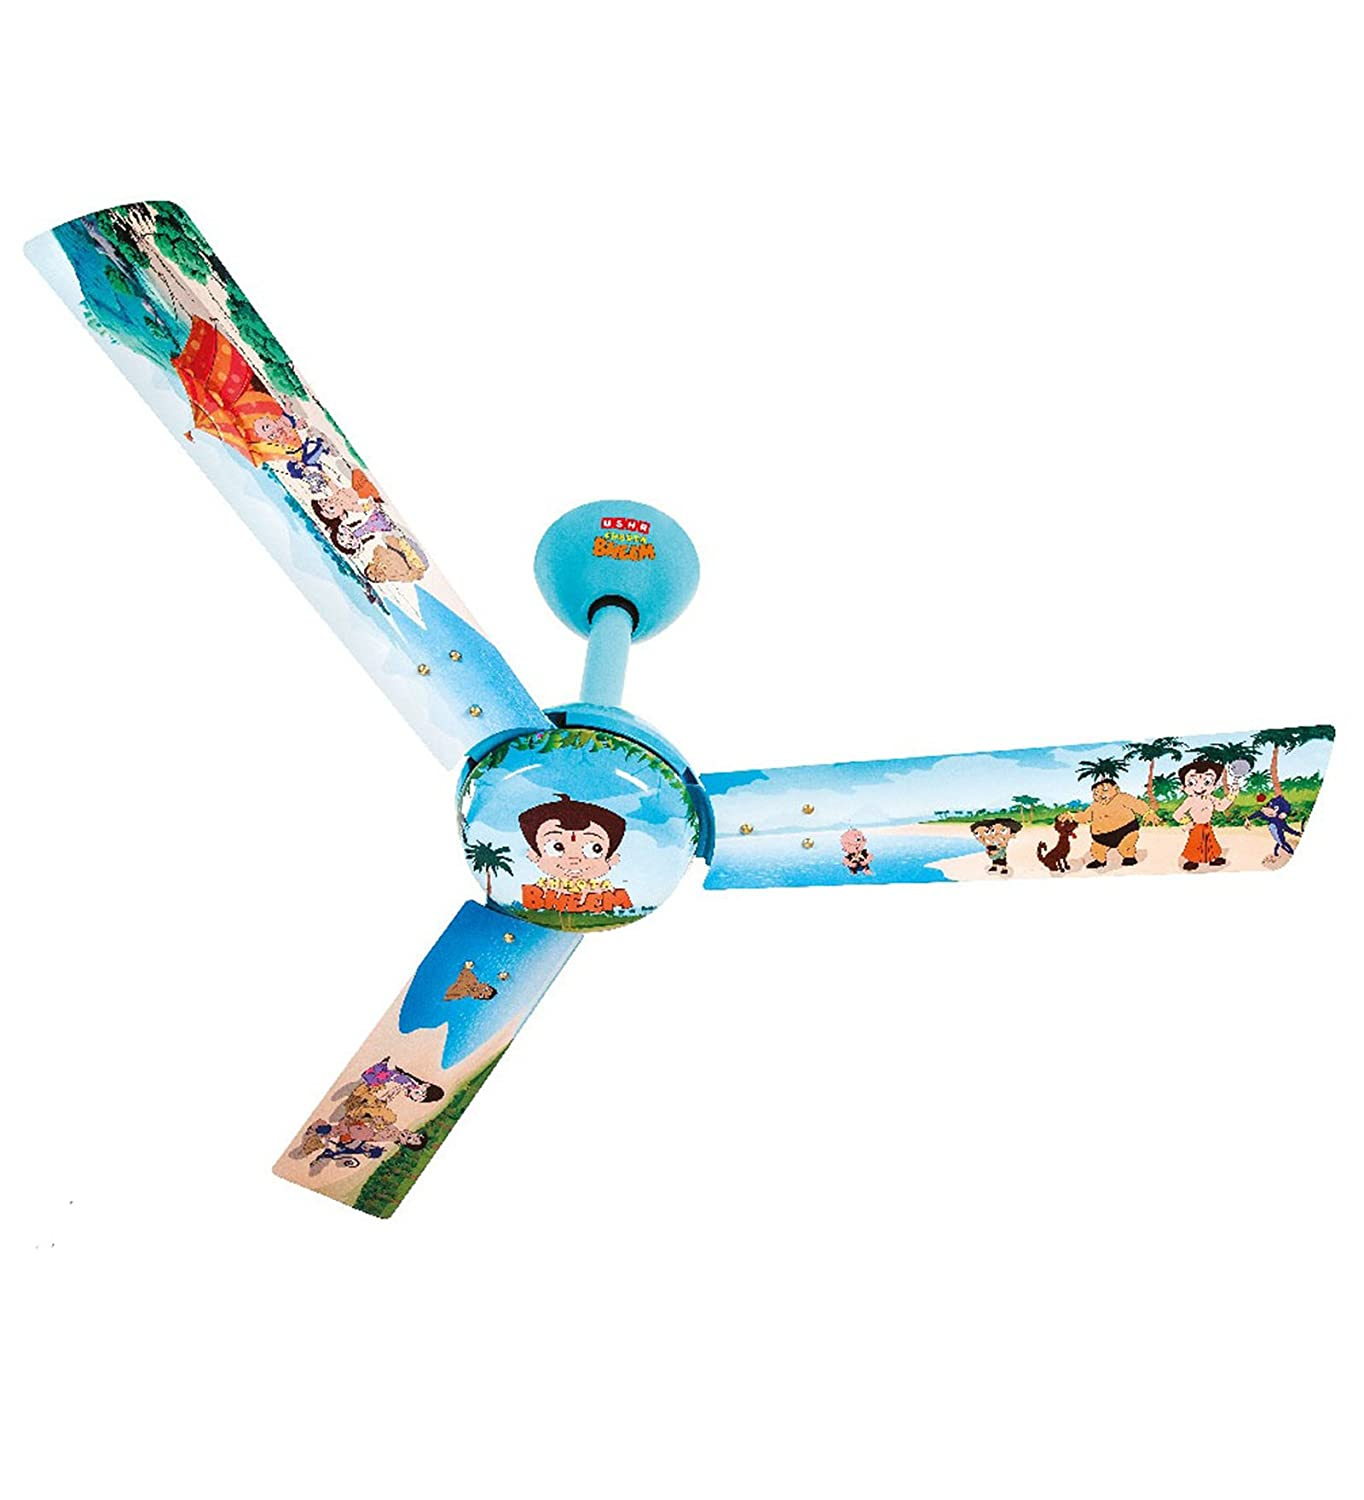 Usha Chhota Bheem Jungle Fun 3 Blade (1200mm)..